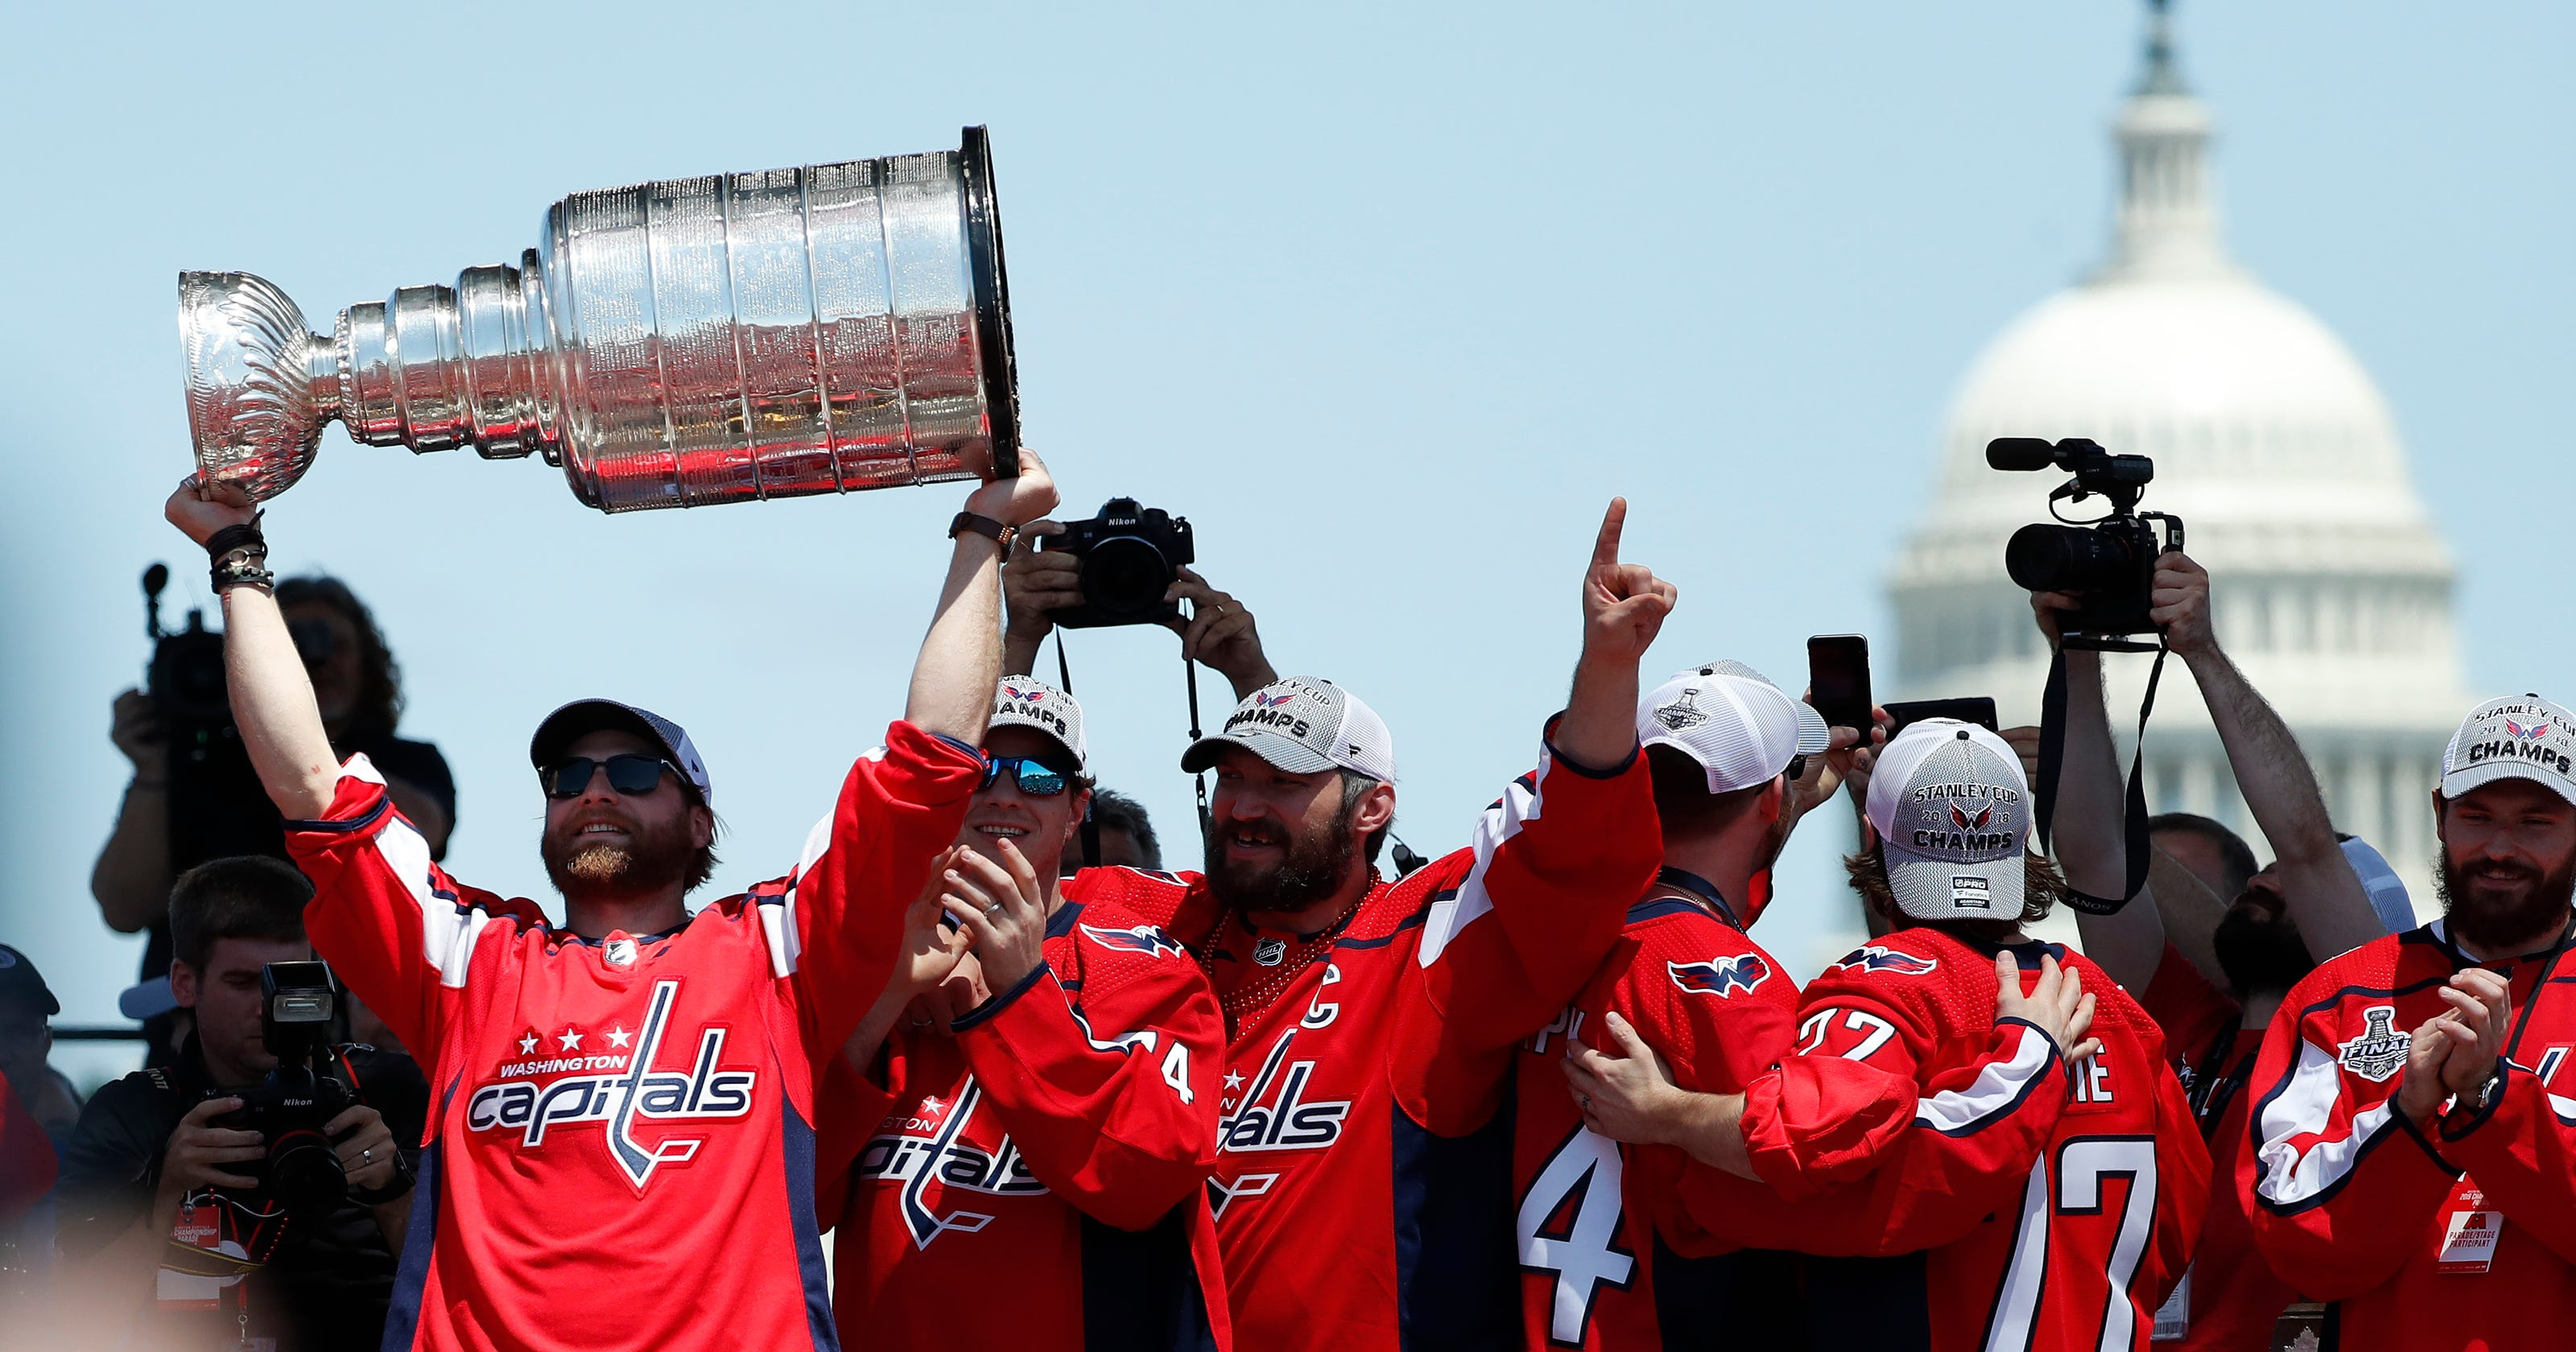 Most Capitals players looking forward to visiting White House a595006f0472